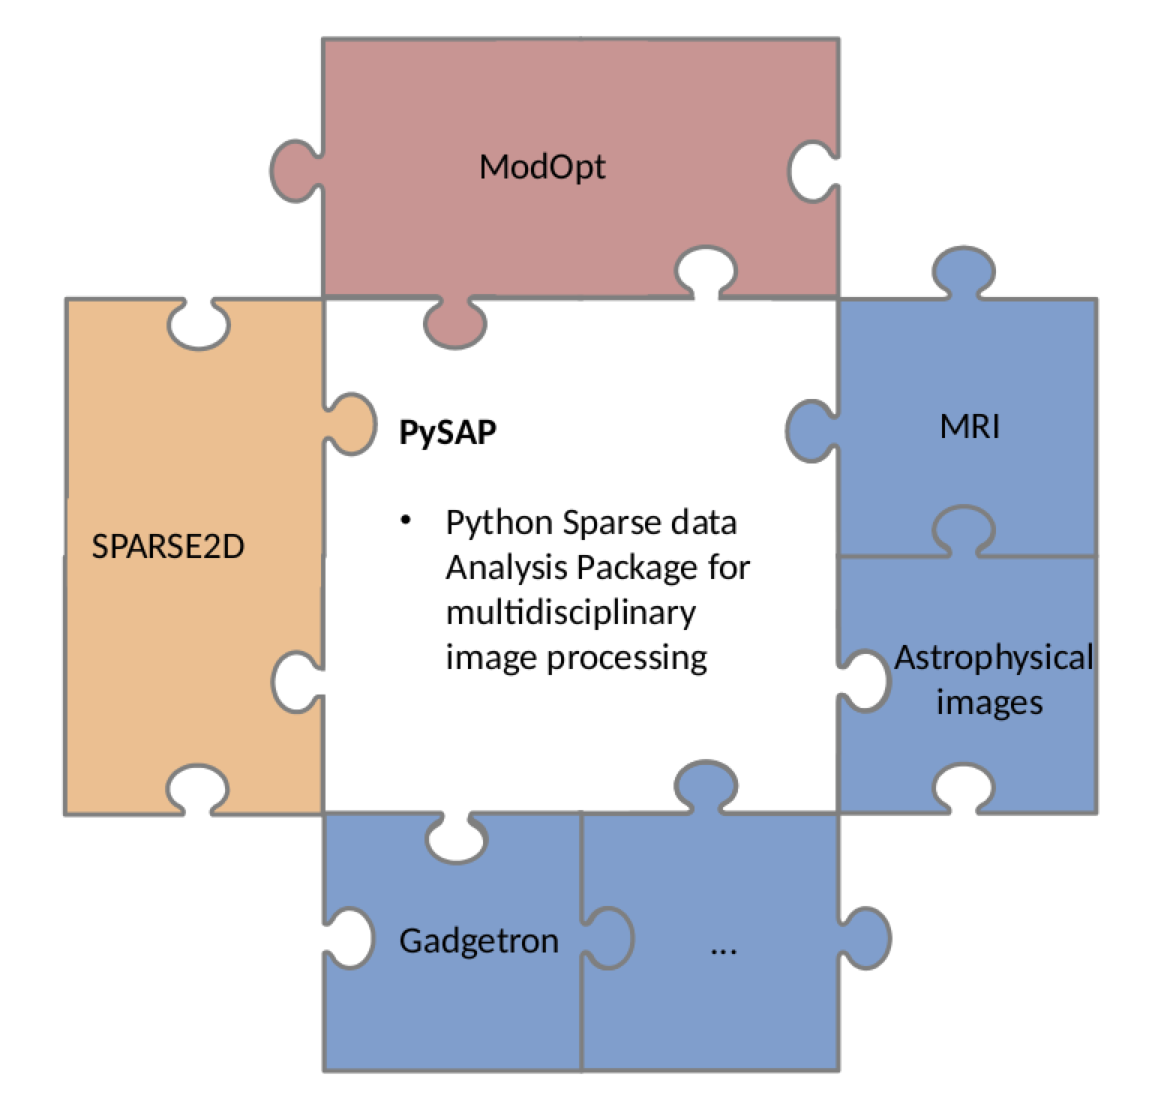 PySAP: Python Sparse Data Analysis Package for Multidisciplinary Image Processing